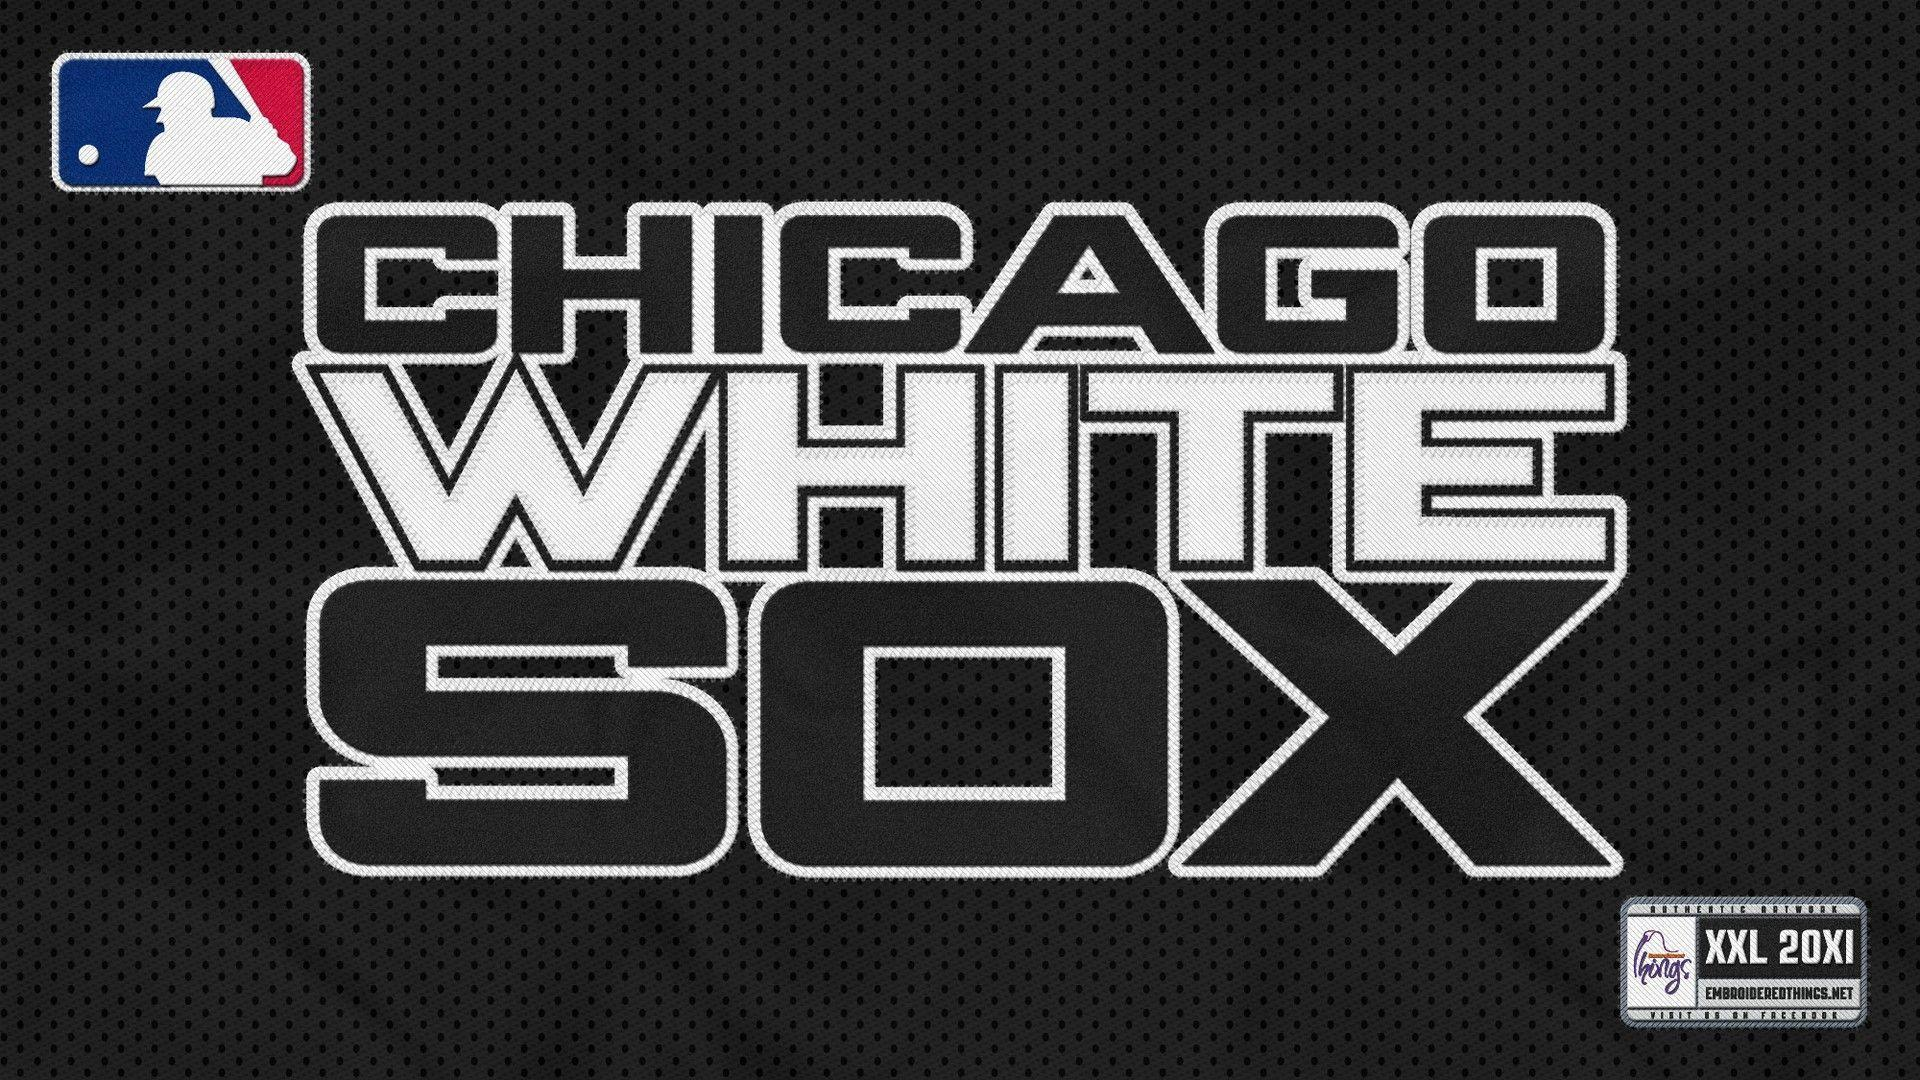 2 Chicago White Sox HD Wallpapers